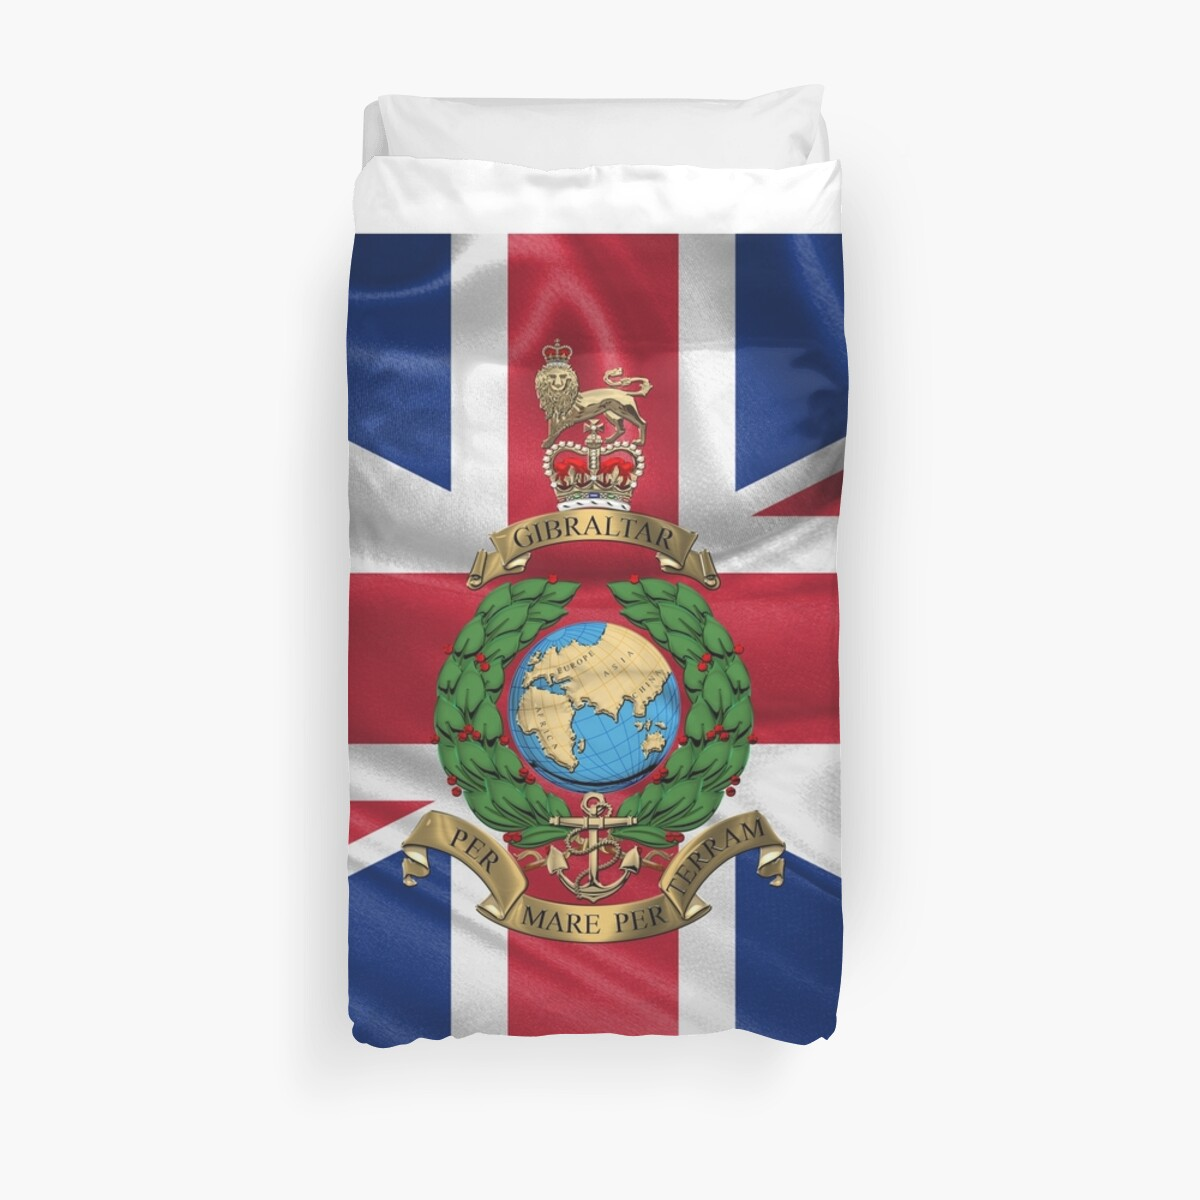 fdd2acec The Corps of Royal Marines - RM Emblem over Flag